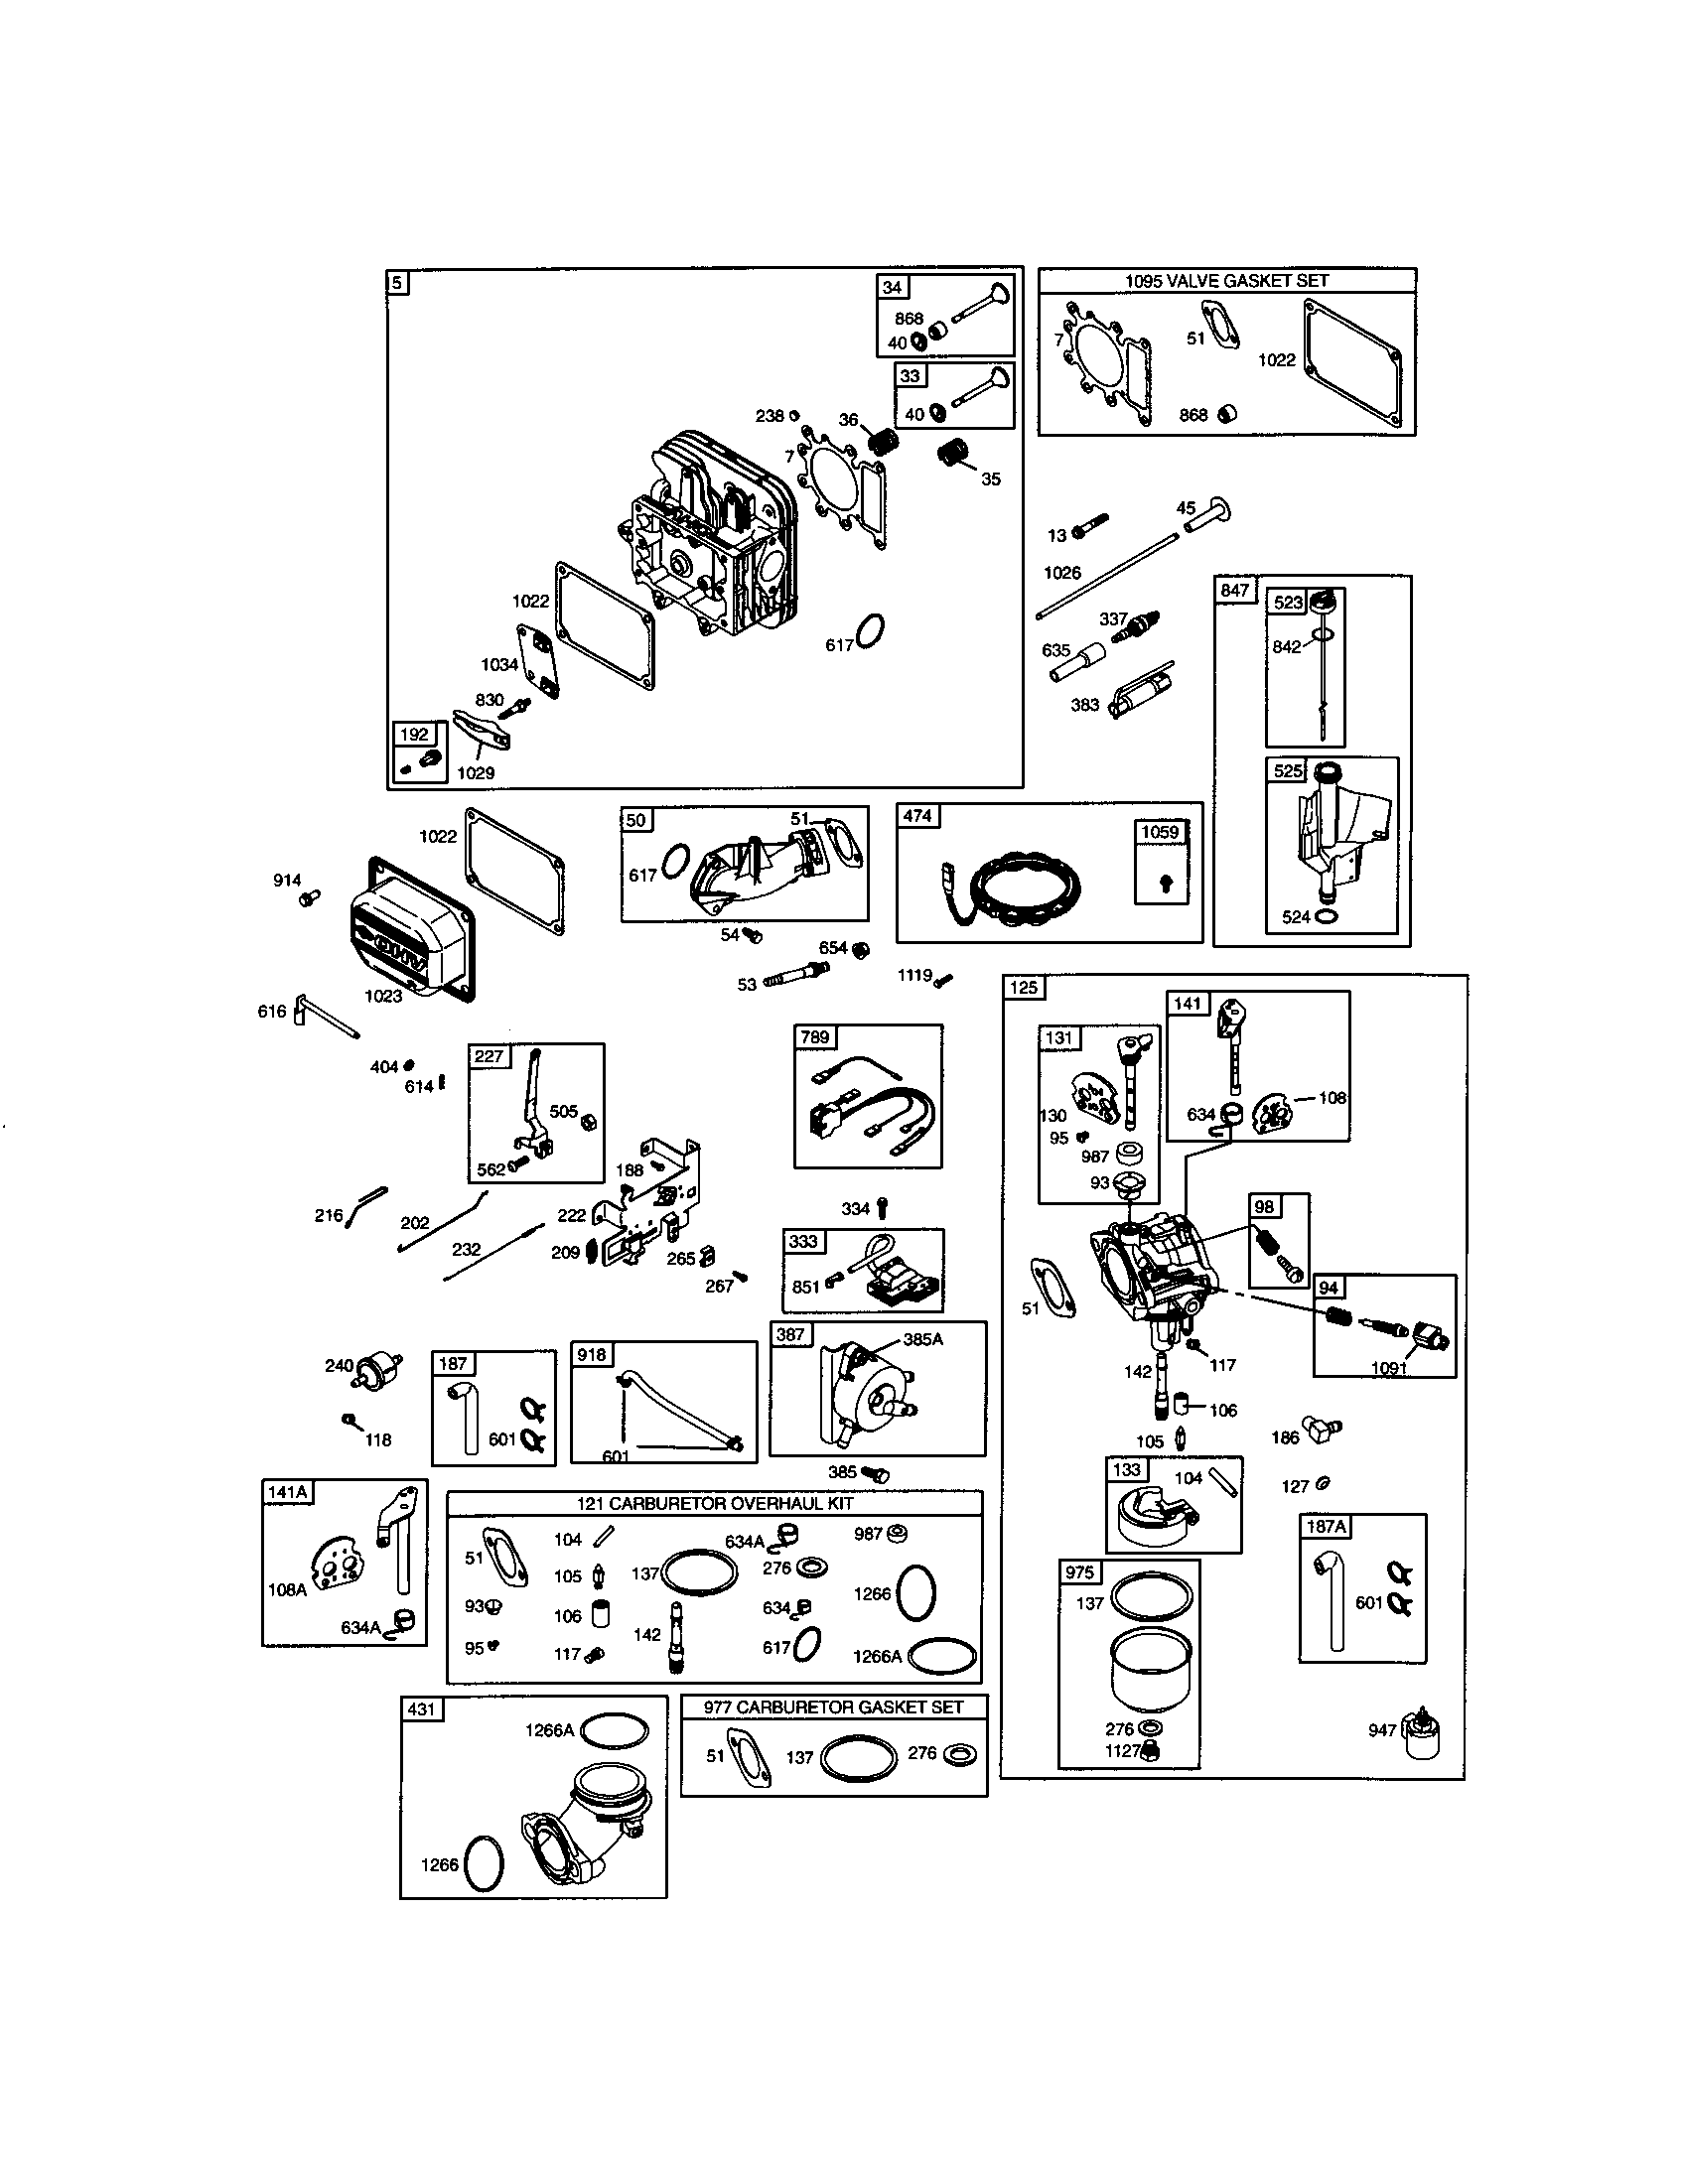 briggs stratton 19 5 hp diagram